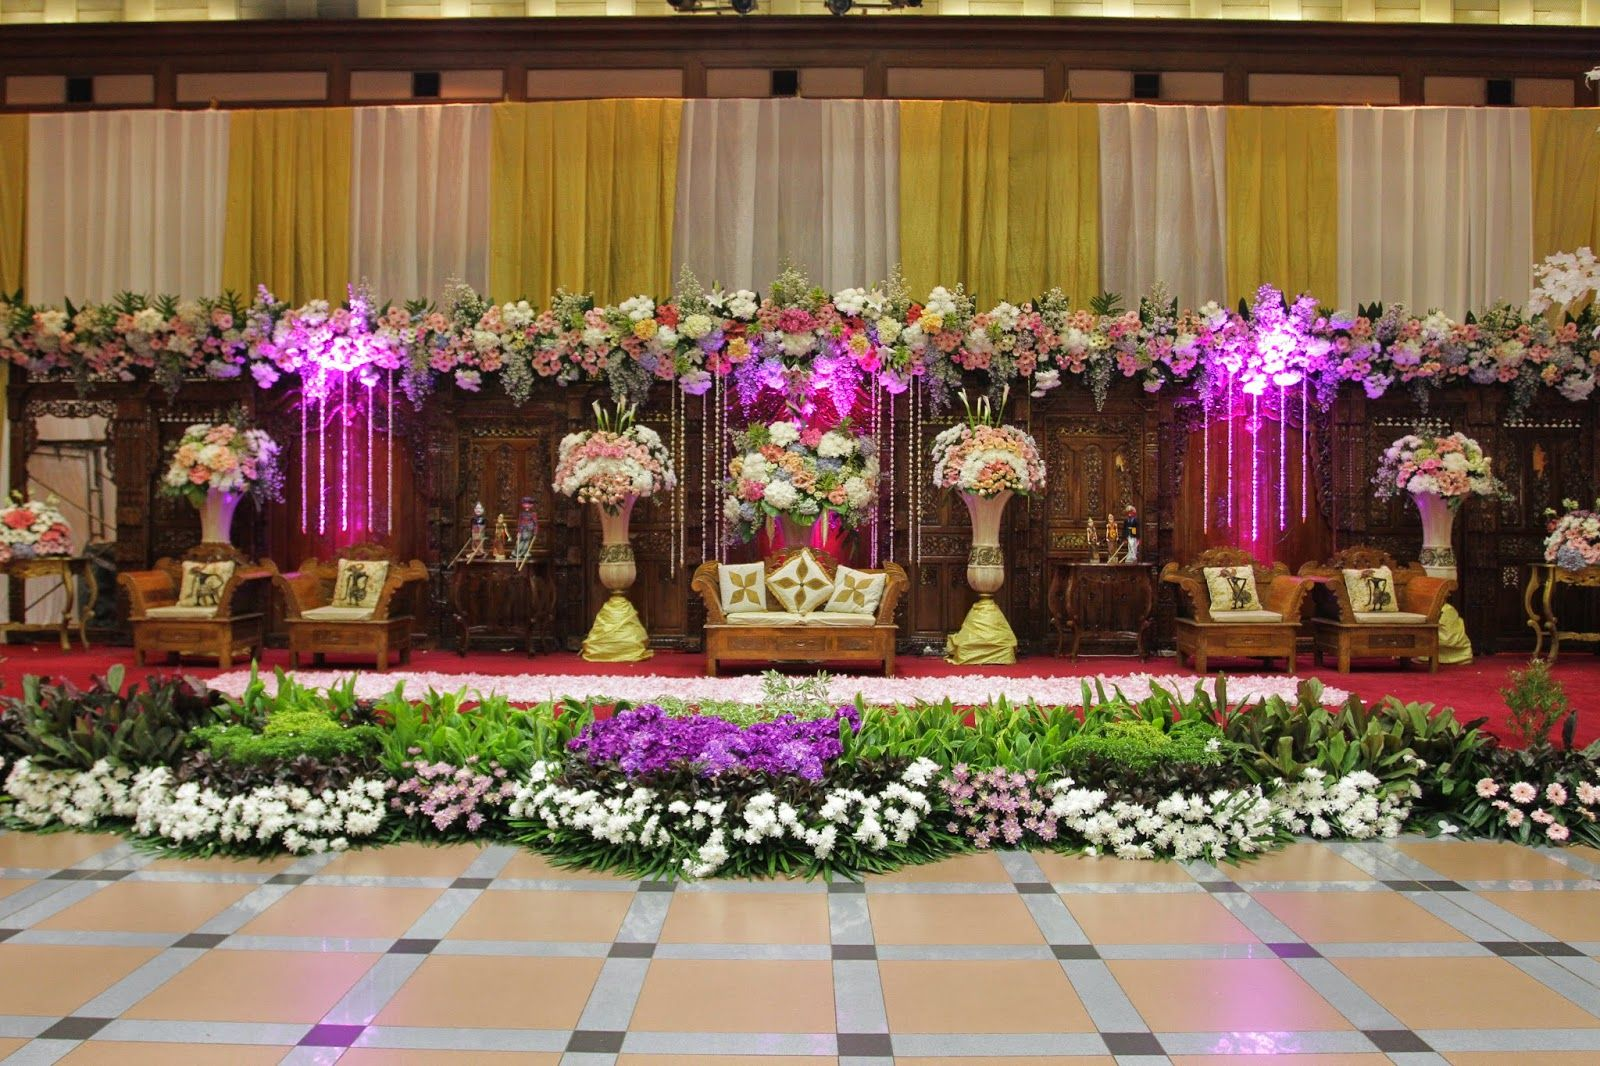 Journey to the day my wedding decoration review star dekor journey to the day my wedding decoration review star dekor alfabet catering junglespirit Image collections